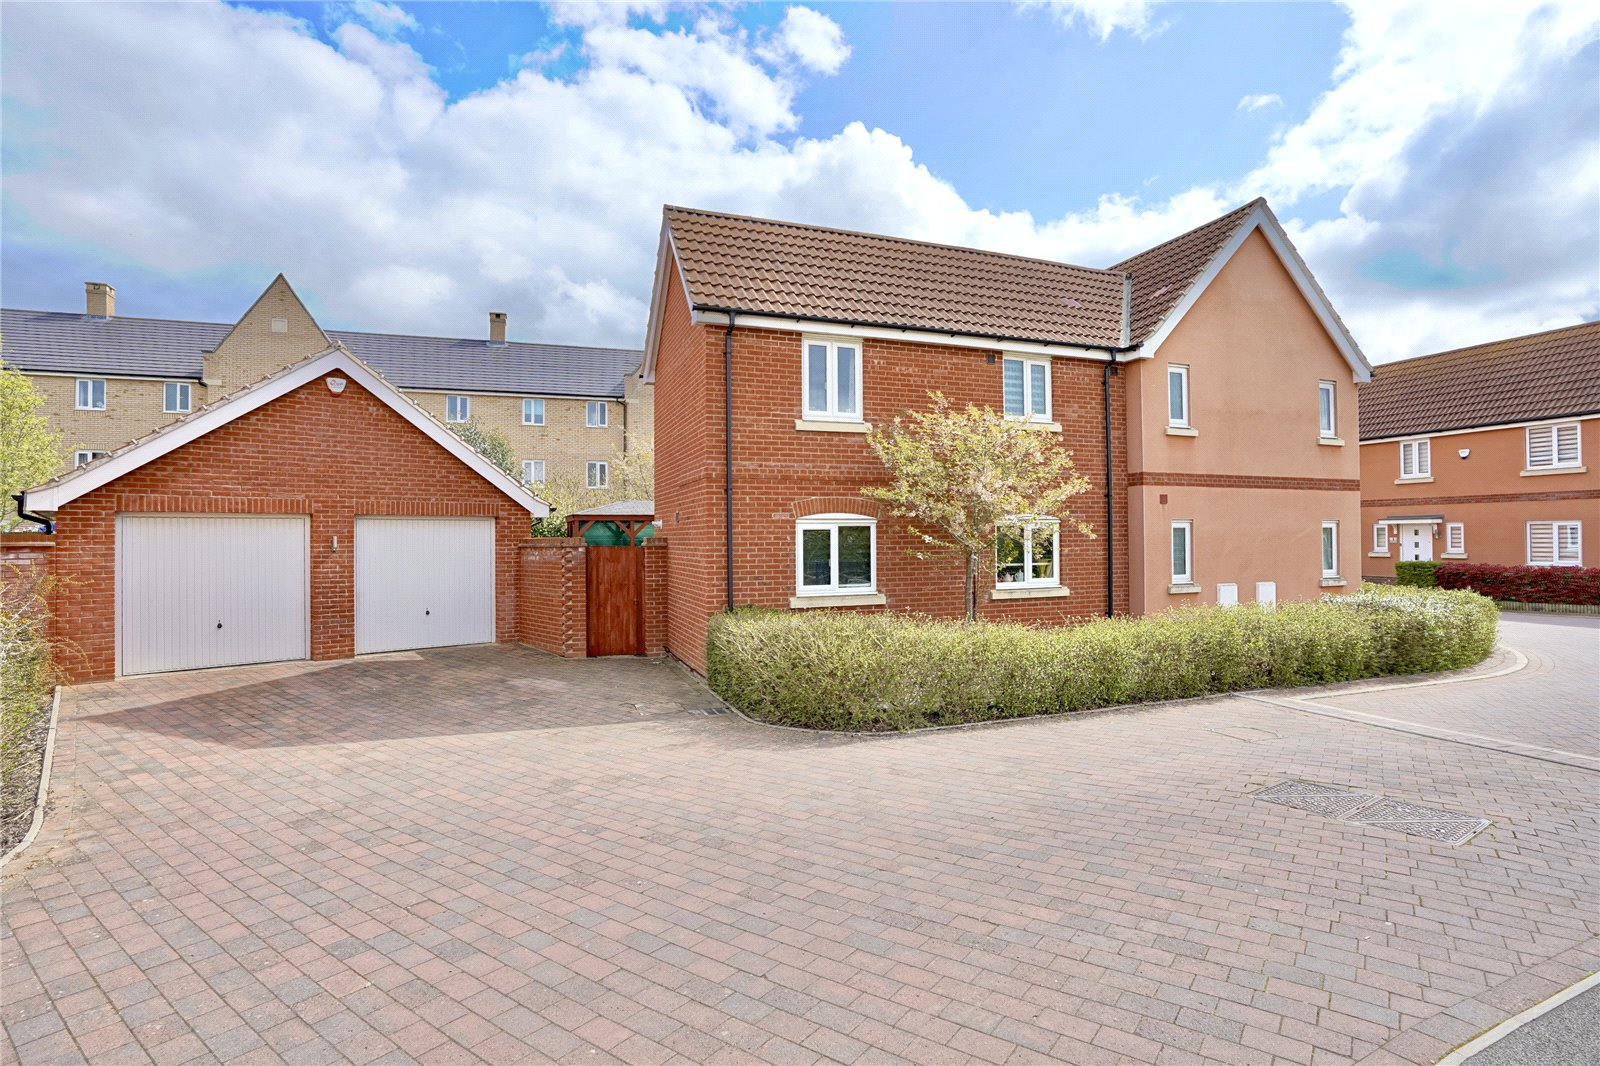 4 bed house for sale in Daffodil Close, Eynesbury  - Property Image 1